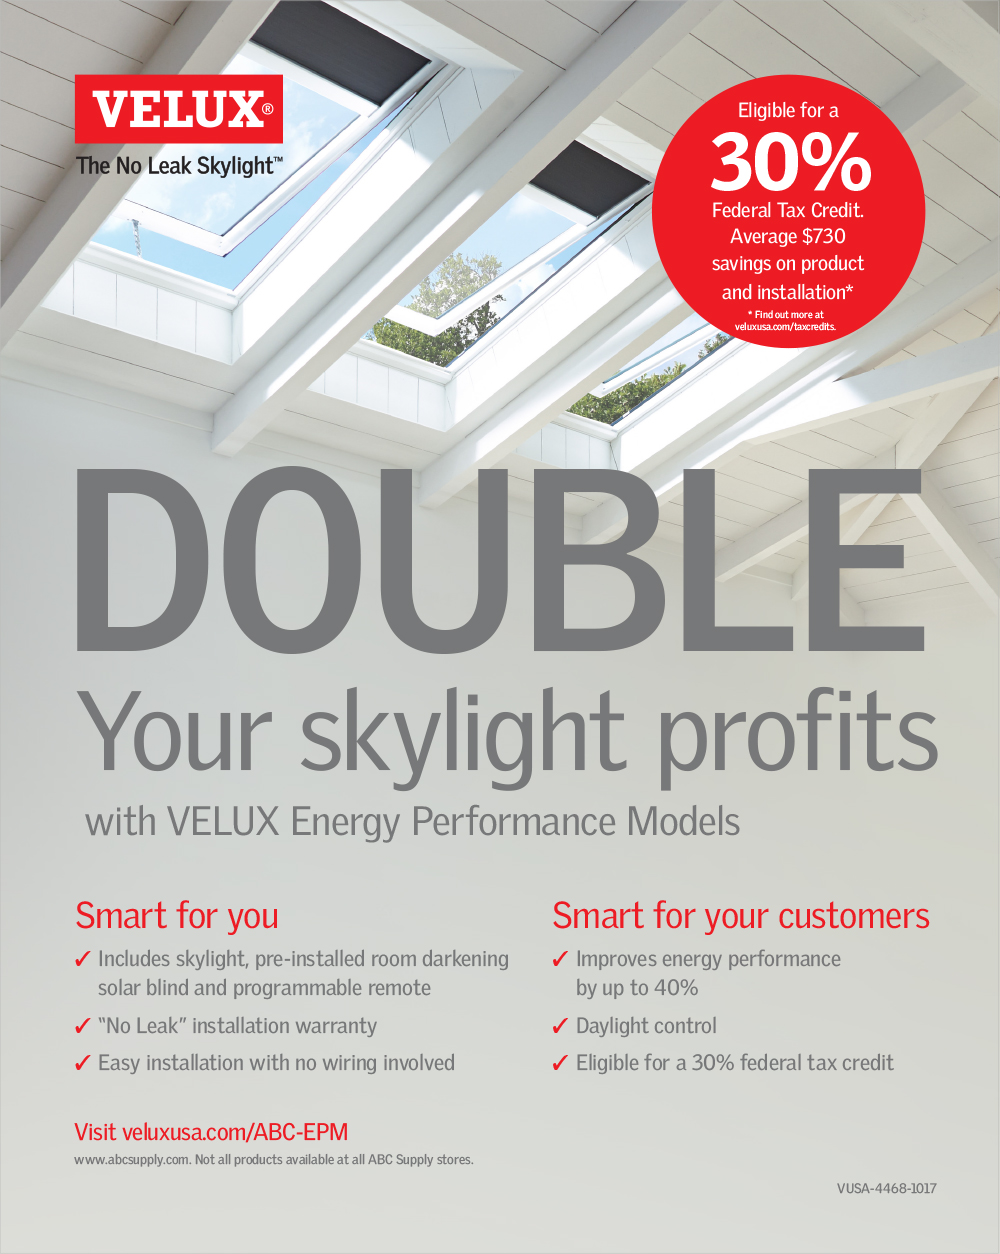 Velux Reference destiné velux energy performance model skylights ad 2018 – jonathan abernathy